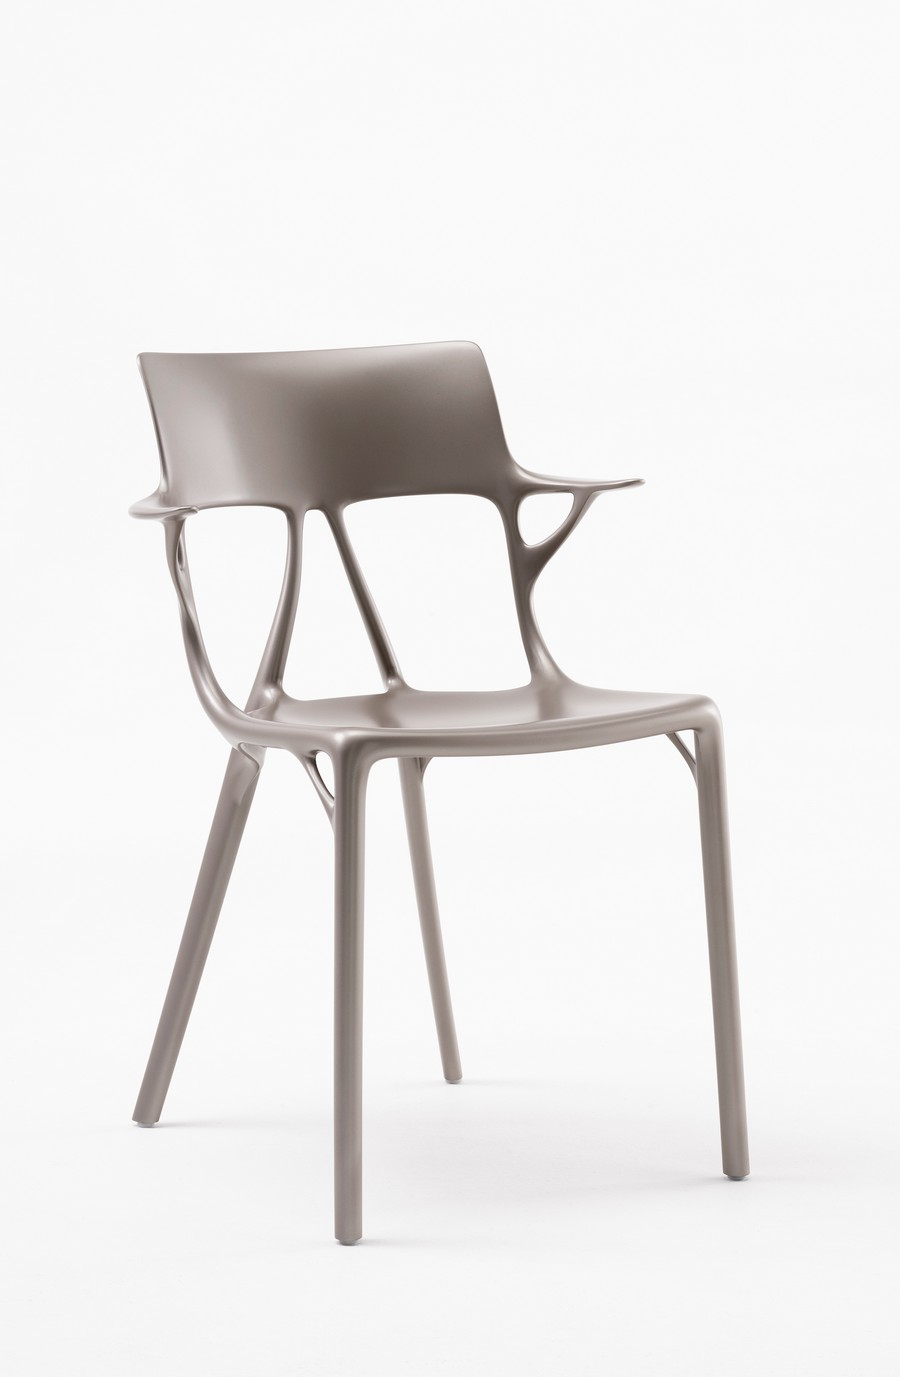 Kartell and Philippe Starck Created The First A.I. Chair Design kartell Kartell and Philippe Starck Created The First A.I. Chair Design Kartell and Philippe Starck Created The First AI Chair Design 4